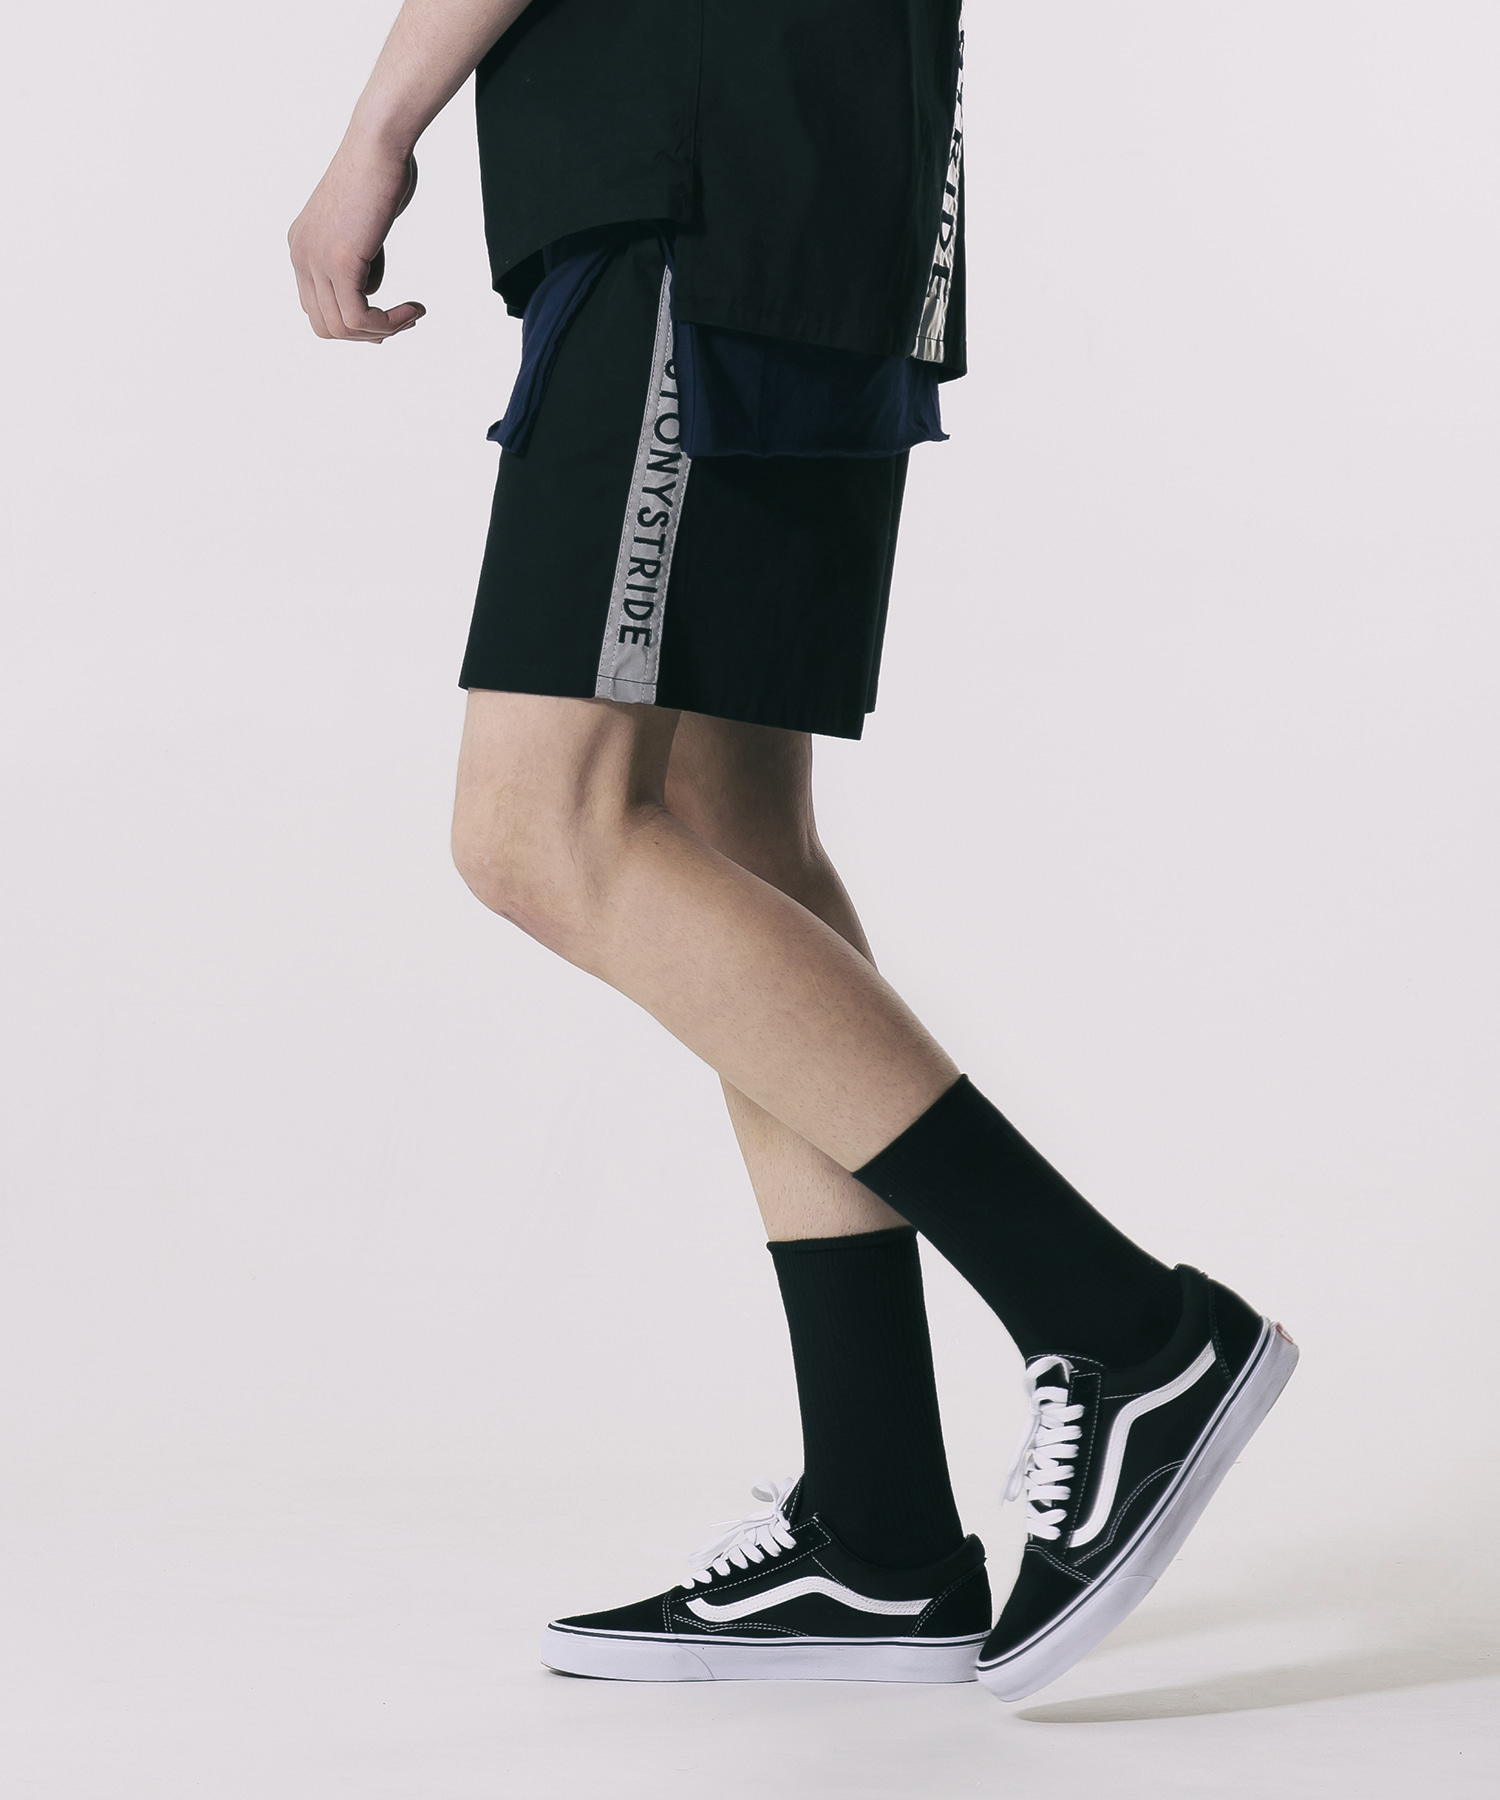 3M SCOTCH BIO WHASHING SHORT - BLACK